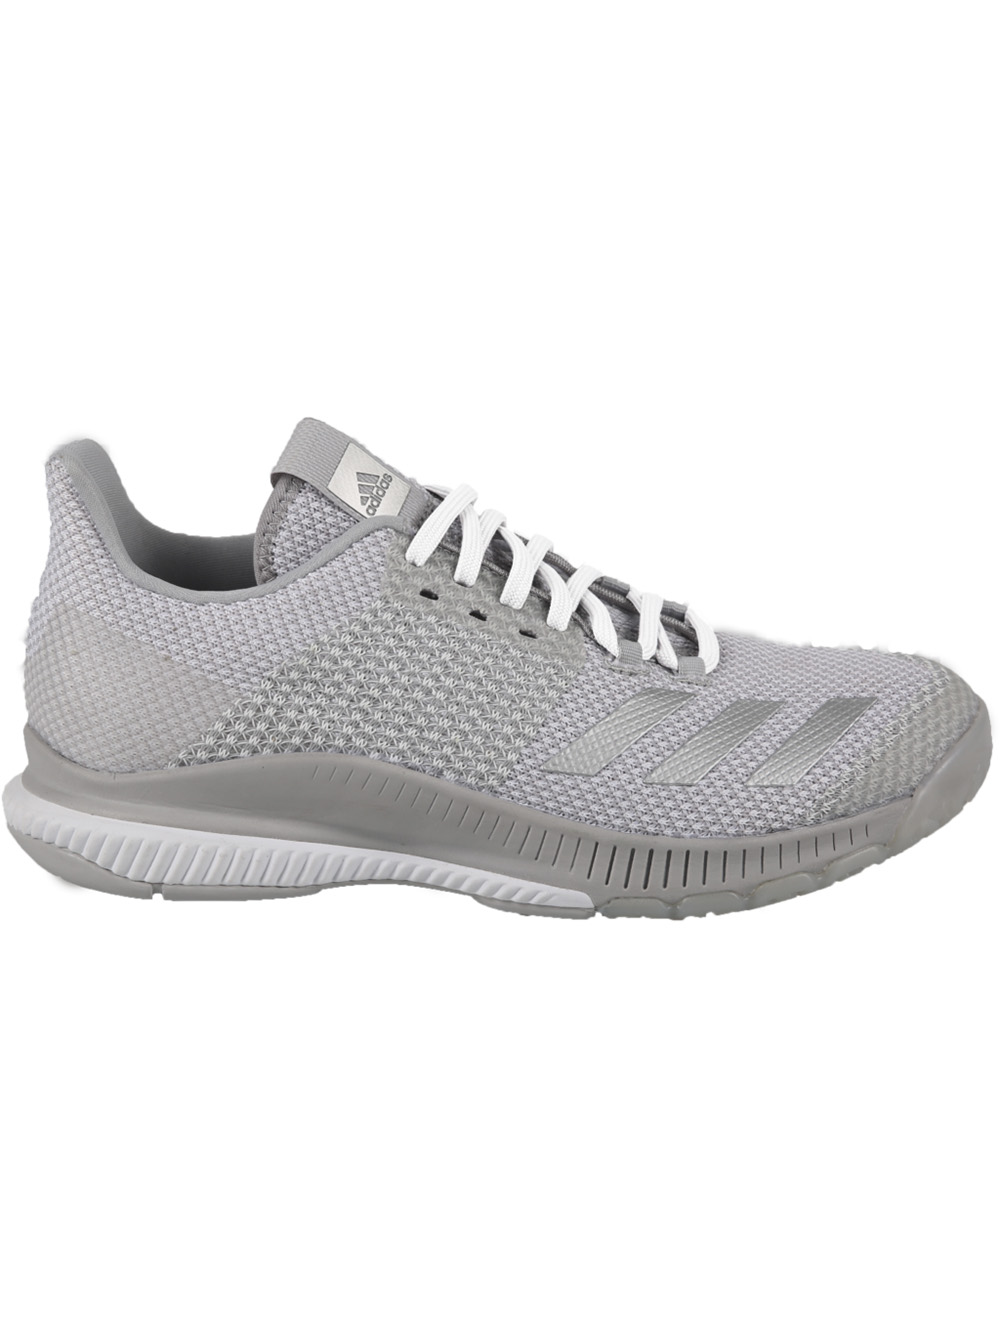 e222ccd90 Adidas Crazyflight Bounce 2